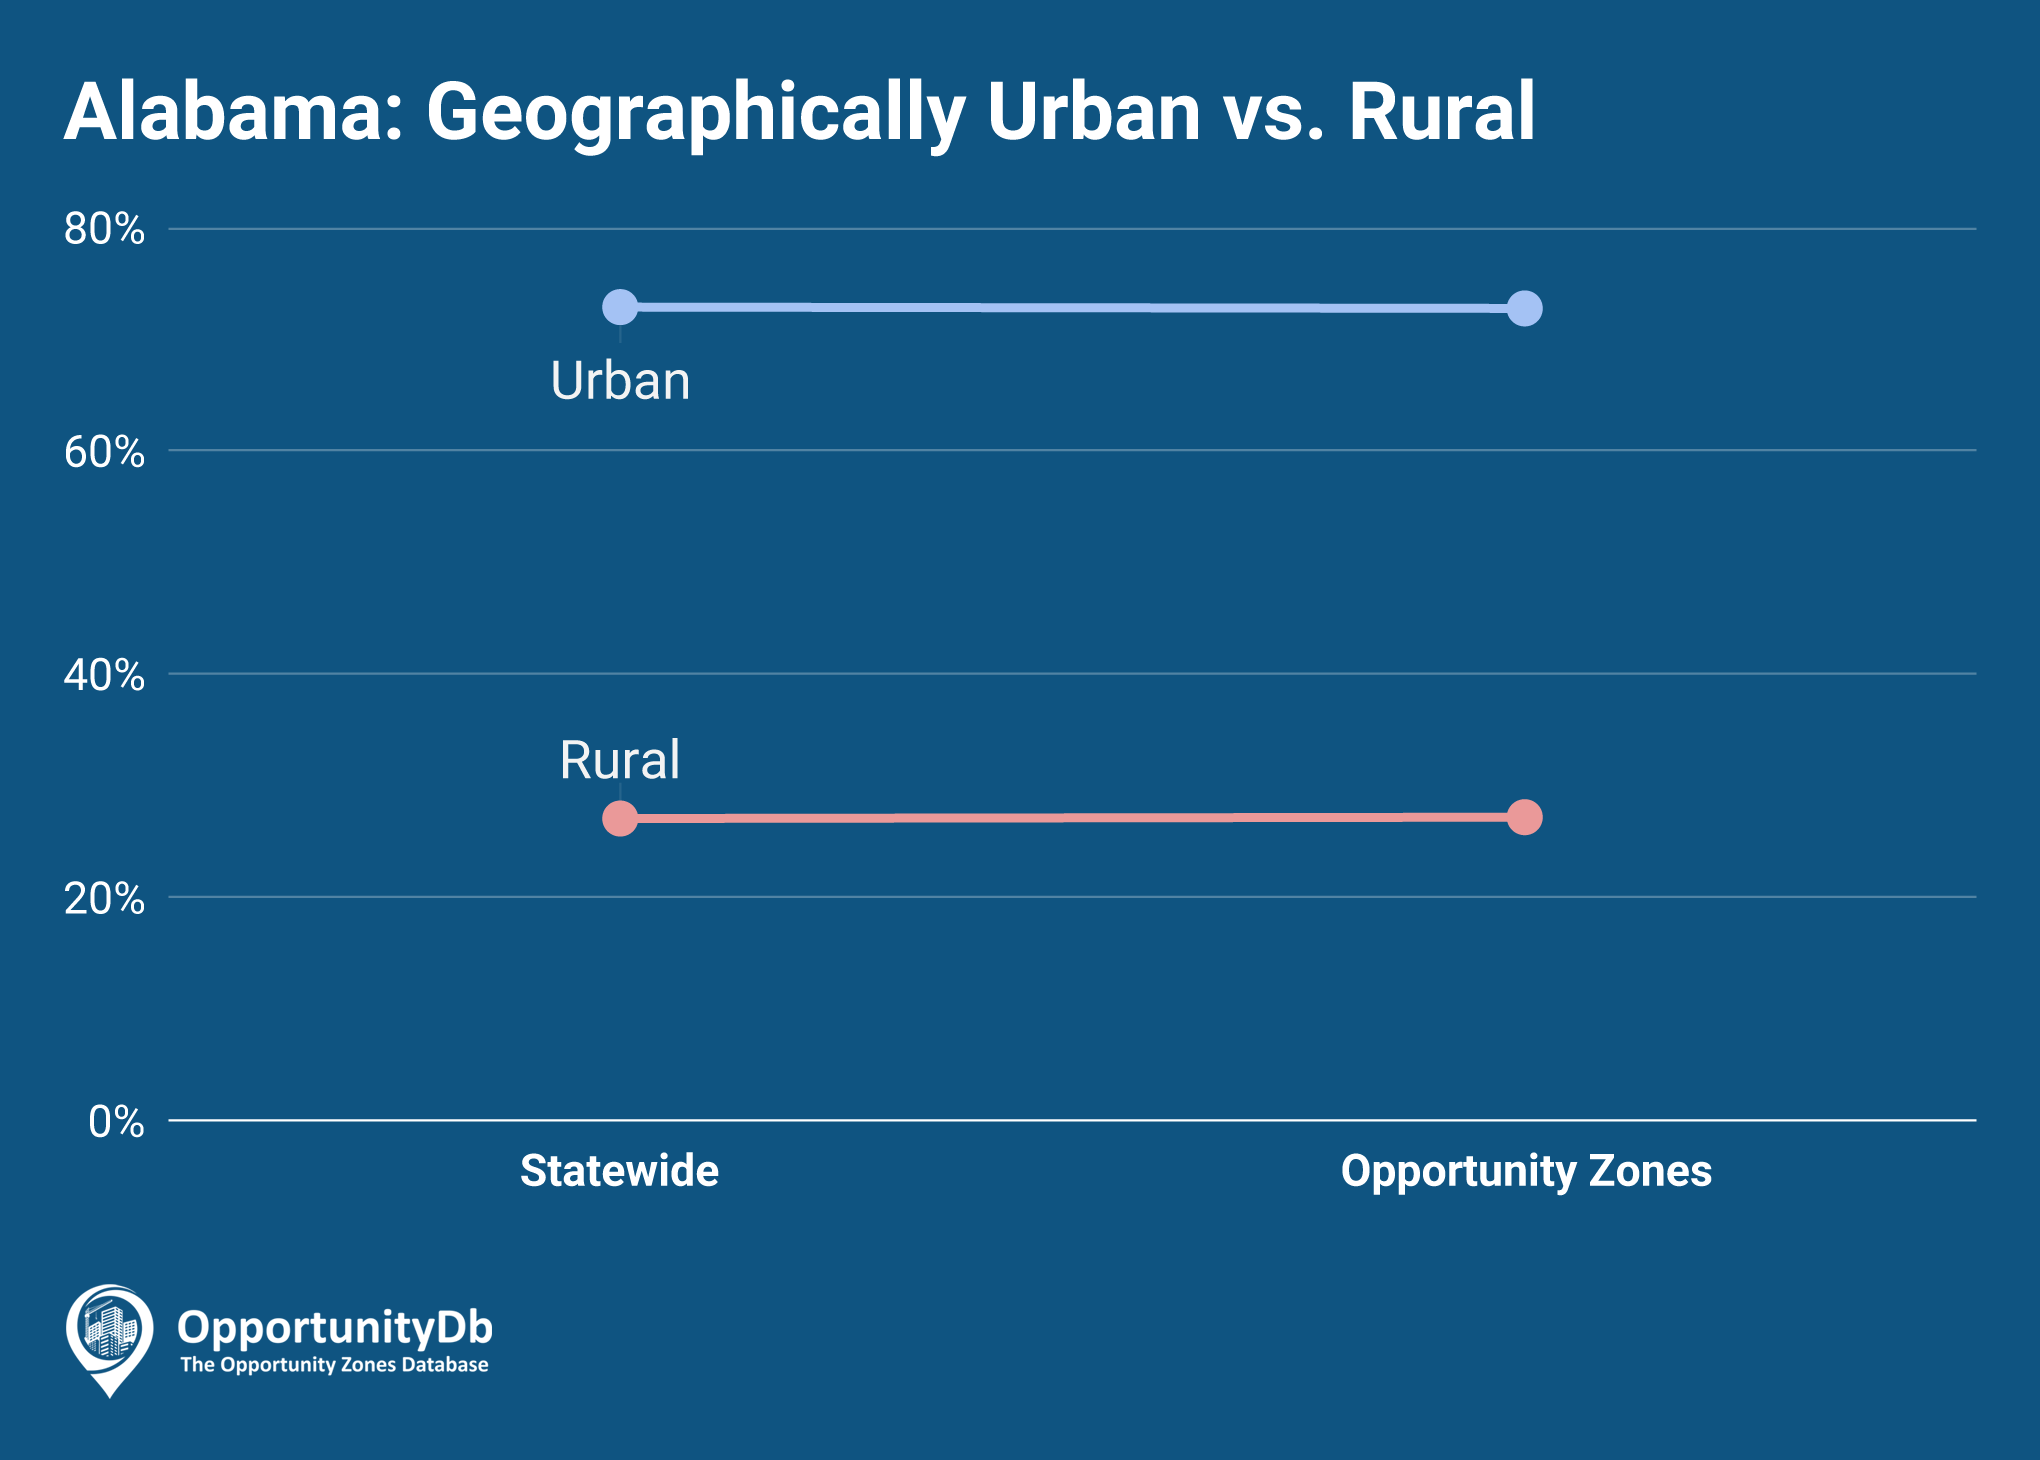 Urban vs. Rural in Alabama Opportunity Zones